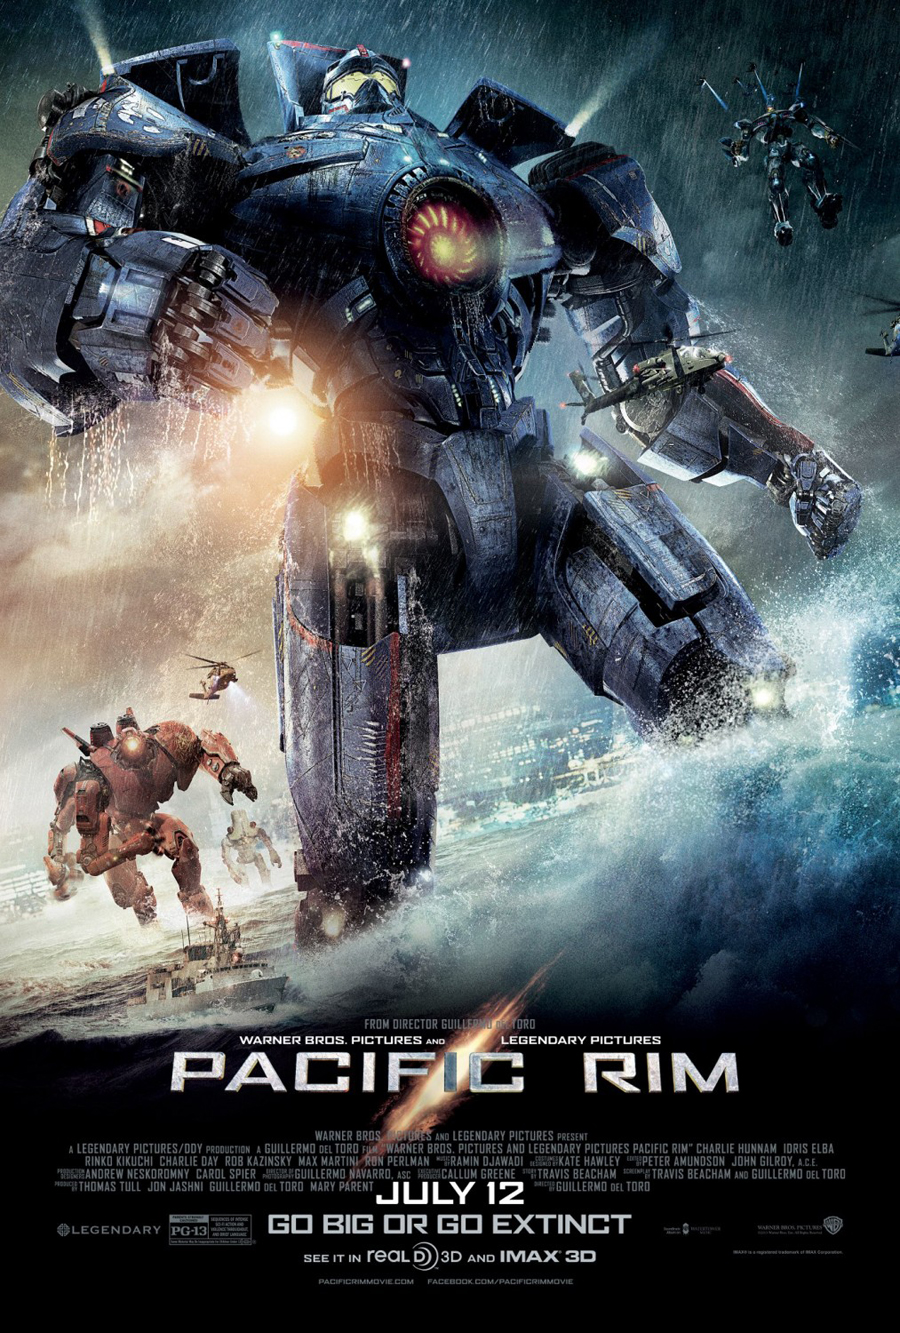 Pacific Rim: Mamporros colosales